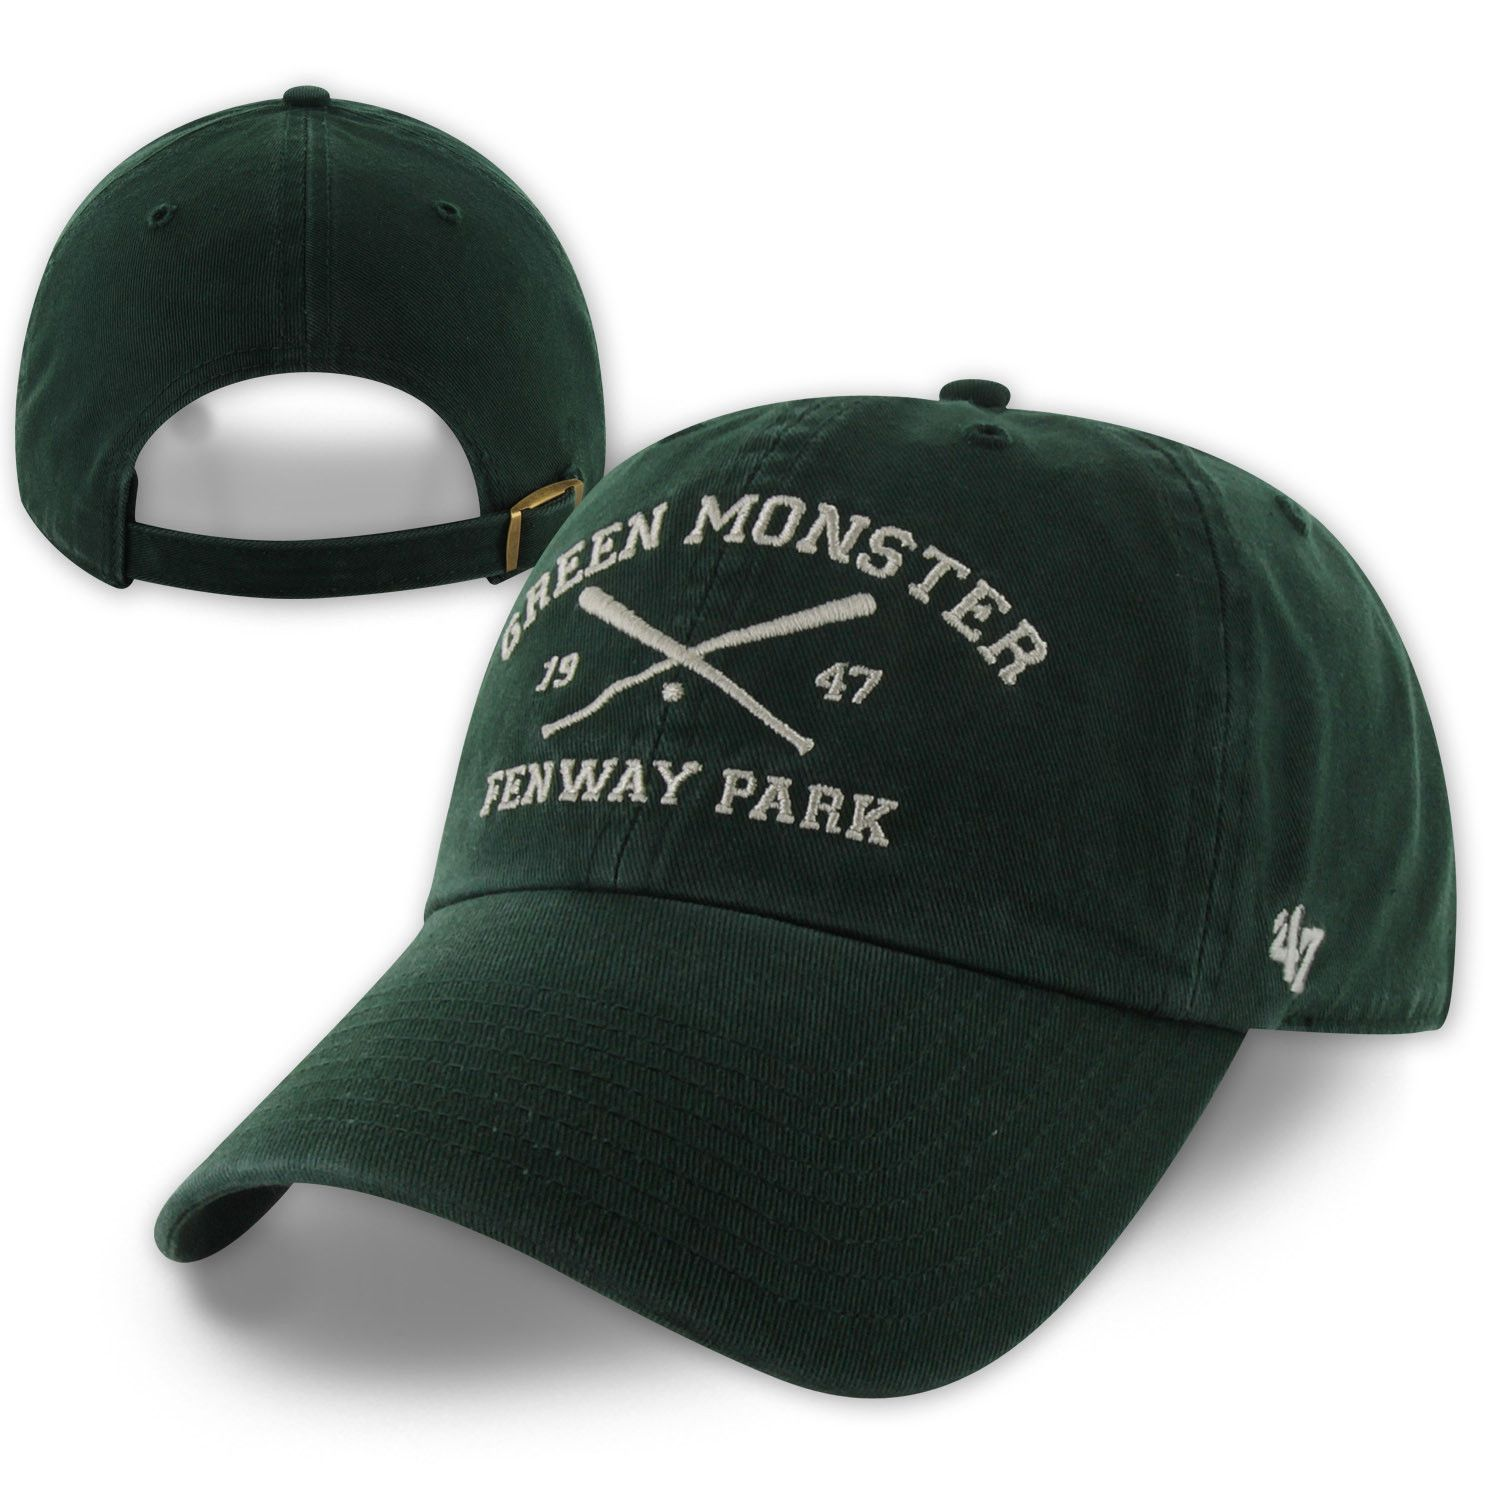 574c45b8e5f 47 Clean-Up - Crossed Bats - Green Monster